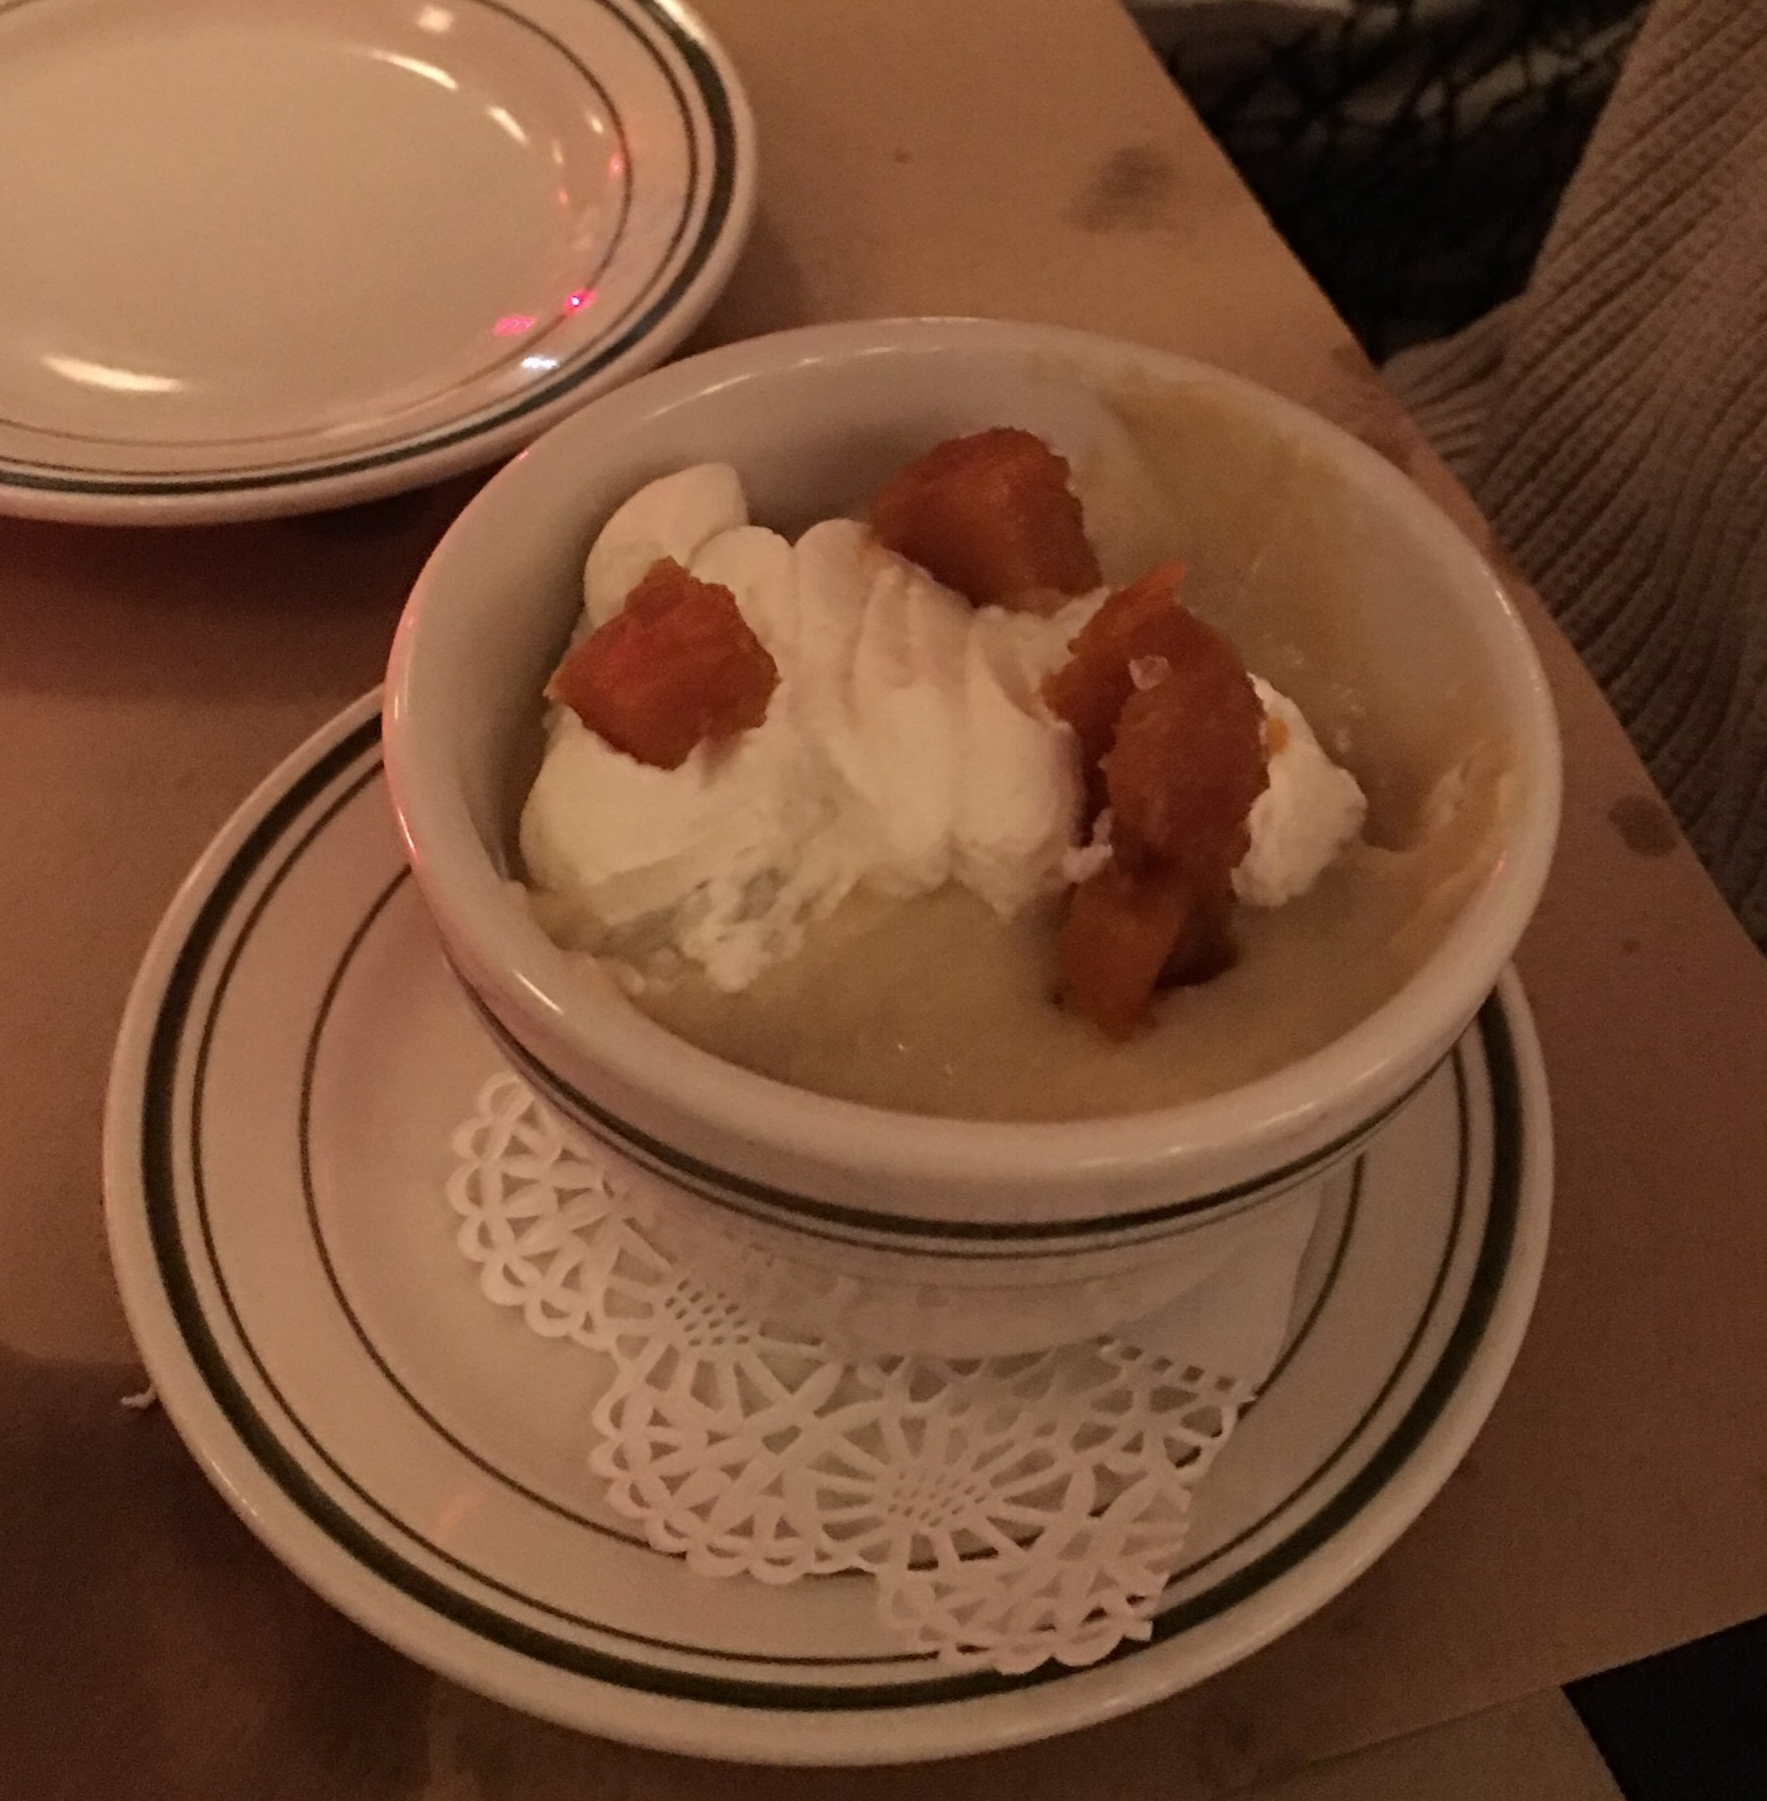 Butterscotch pudding from Trattoria Carina in Philadelphia, PA